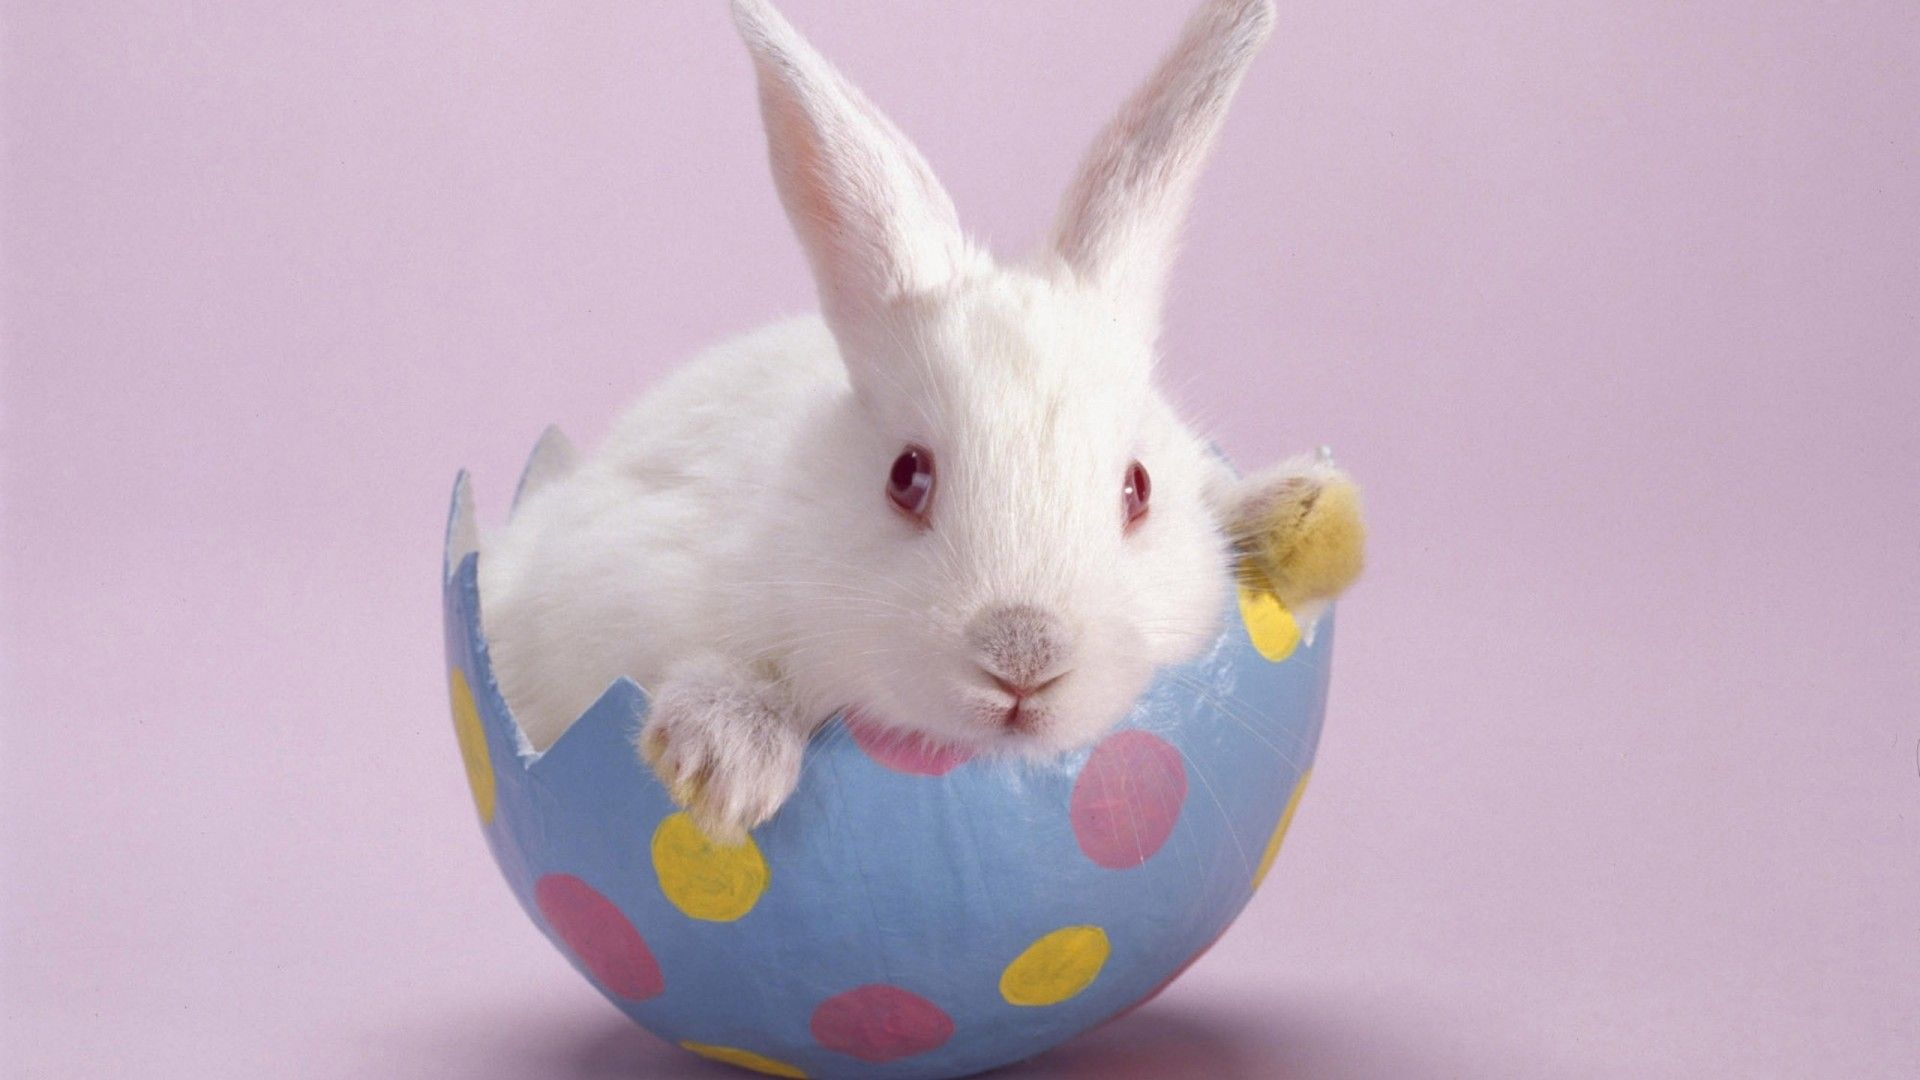 1000+ images about The Easter Bunny on Pinterest | Graphics, Eggs ...